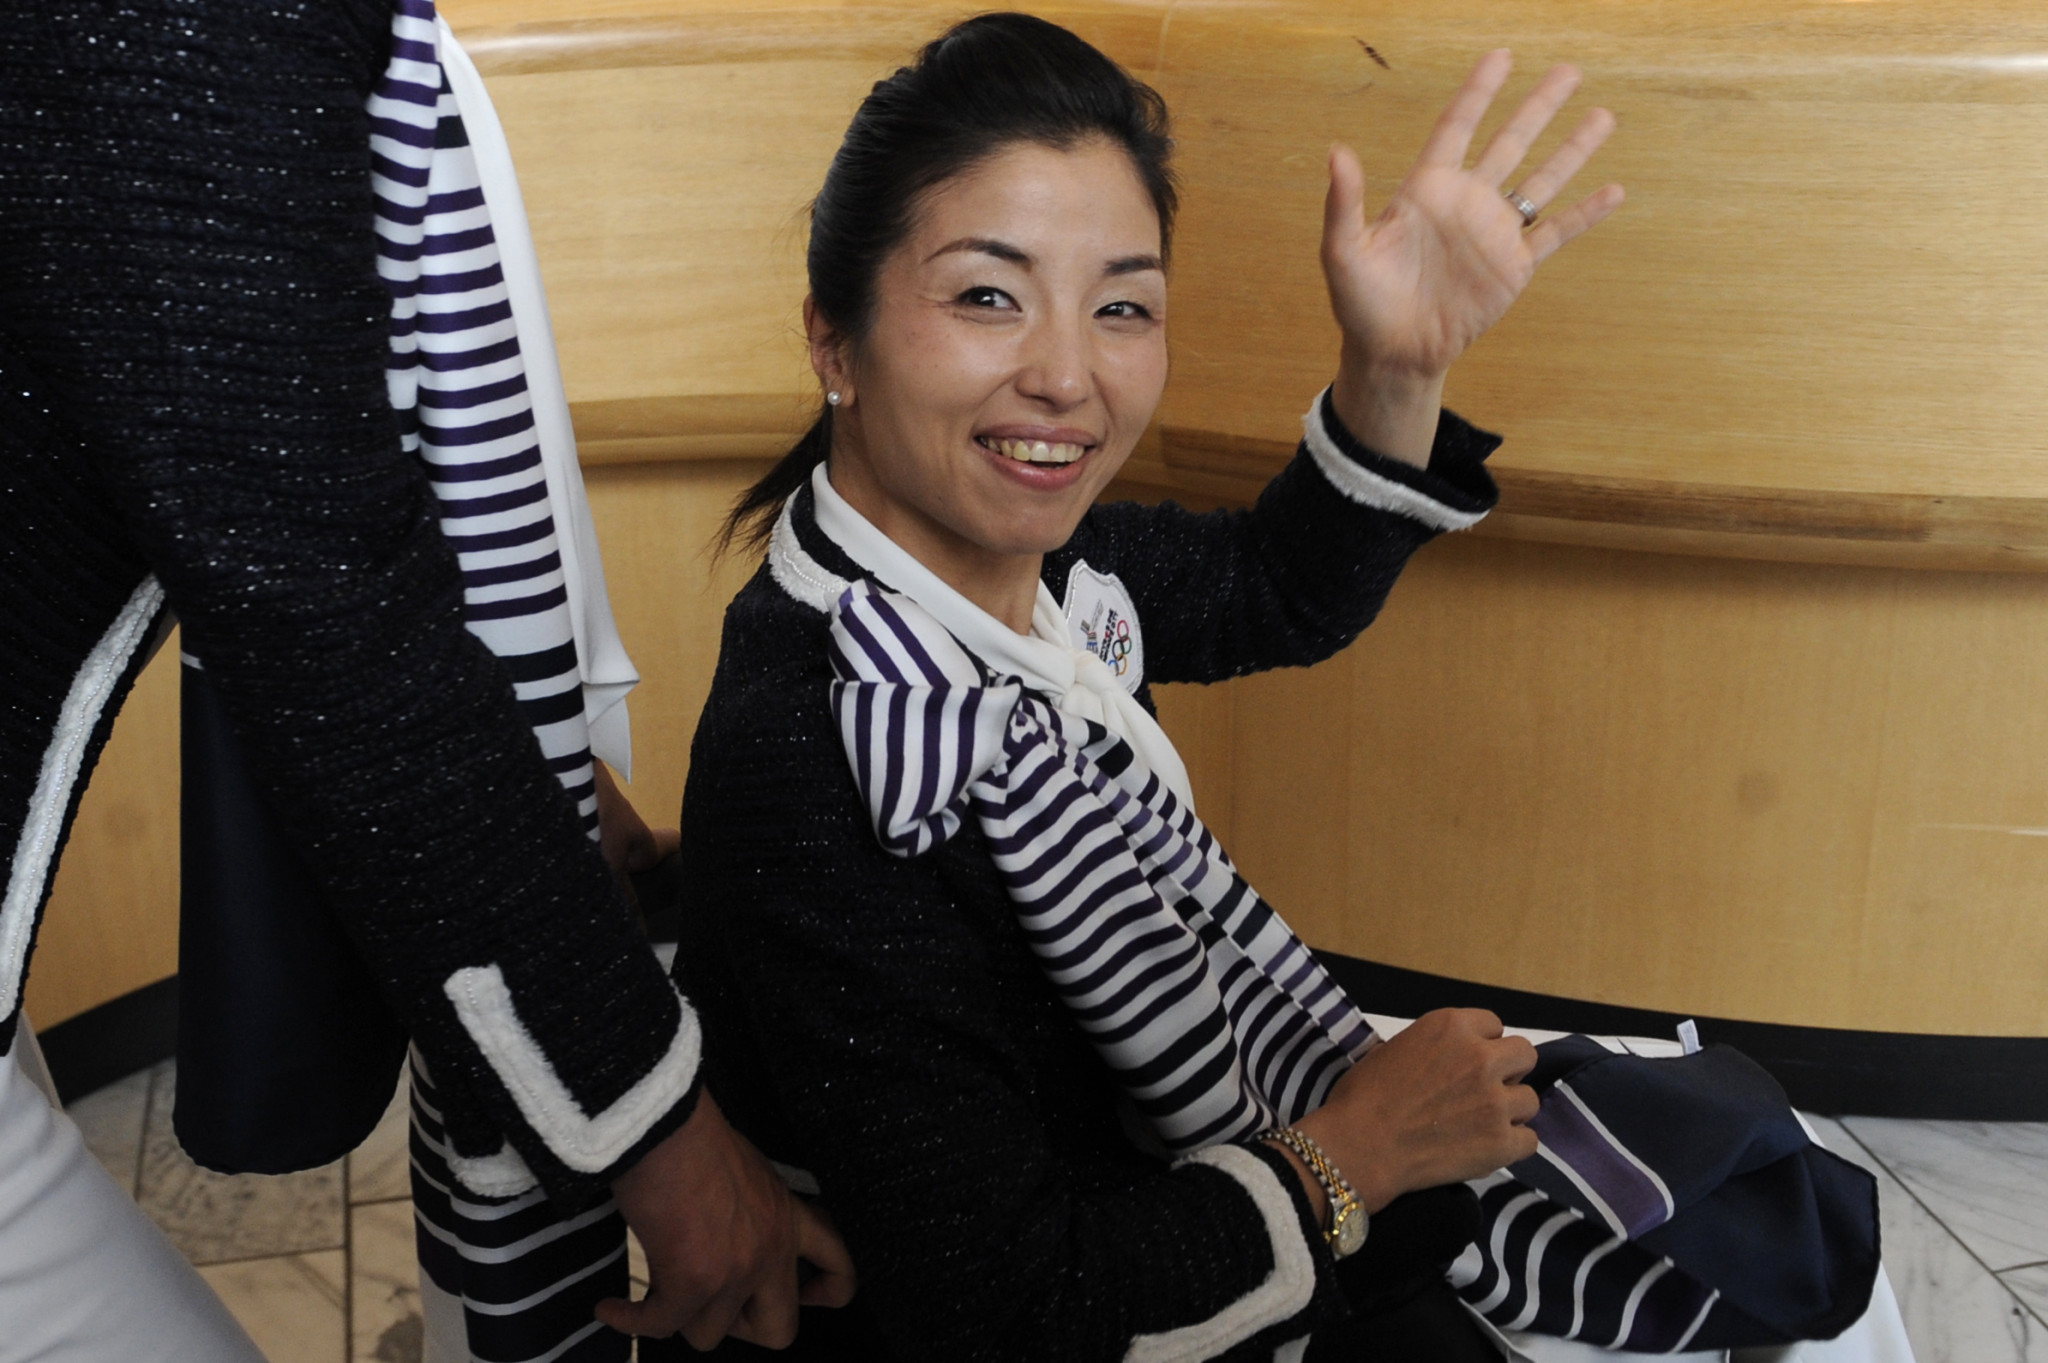 Three-time Paralympian Taguchi appointed athlete liaison at World Shooting Para Sport